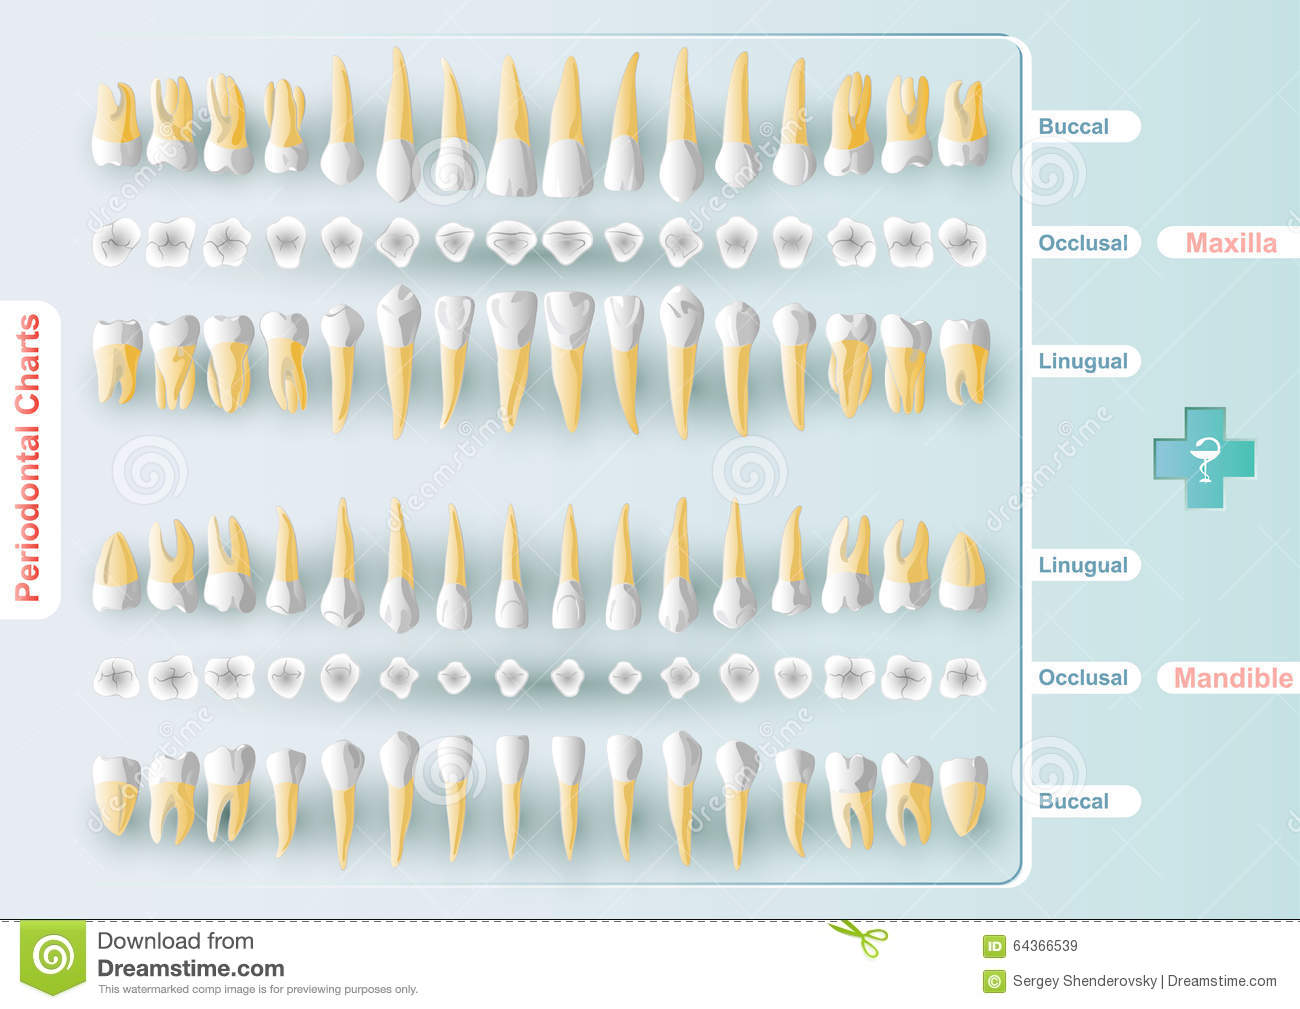 Hygienist stock illustrations 520 hygienist stock illustrations dental and periodontal charting form table dental and periodontal charting in vector format it biocorpaavc Gallery